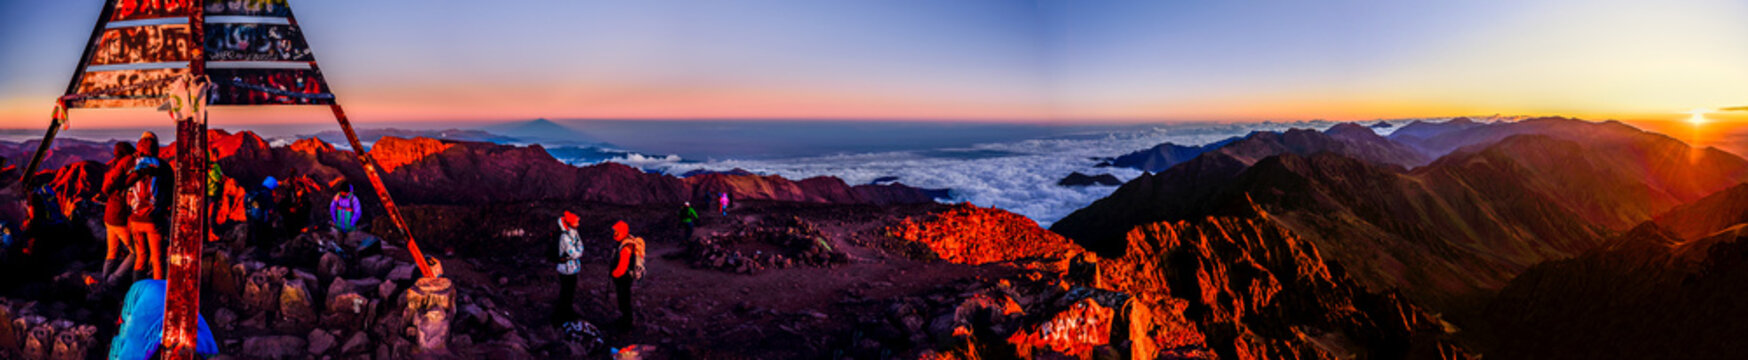 On the summit of Jebel Toubkal, highest mountain in Morocco during sunrise.